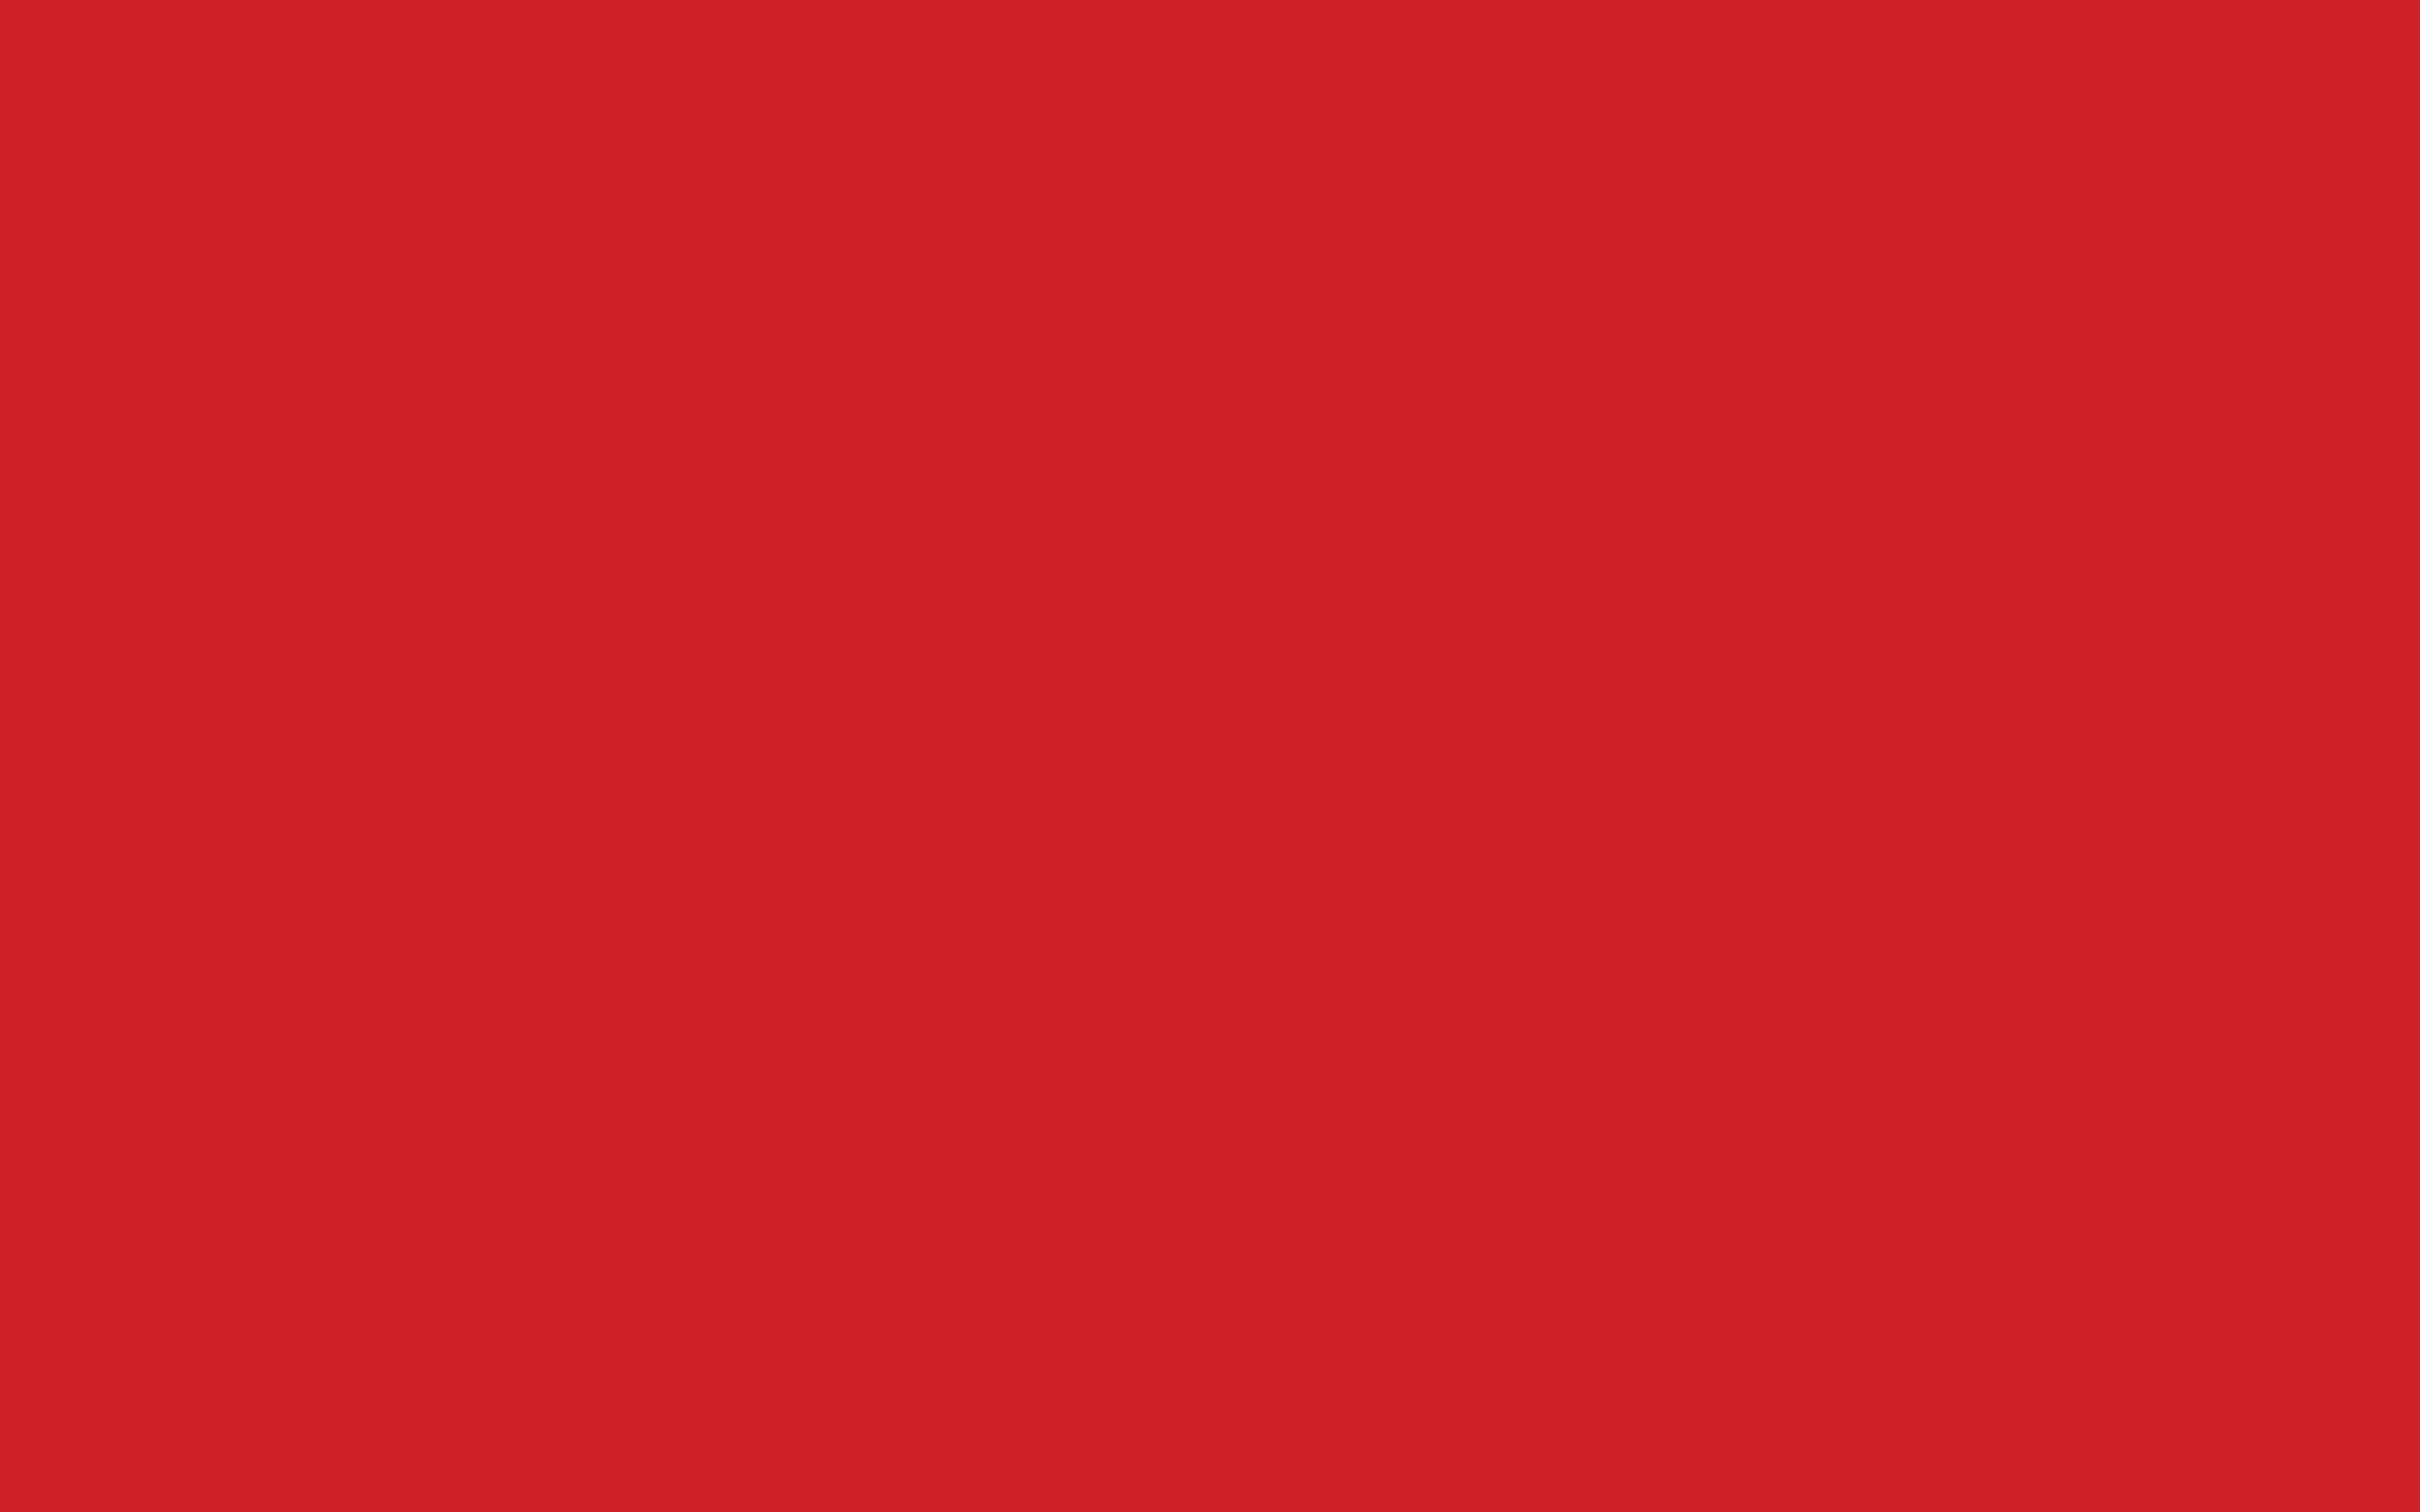 2880x1800 Fire Engine Red Solid Color Background